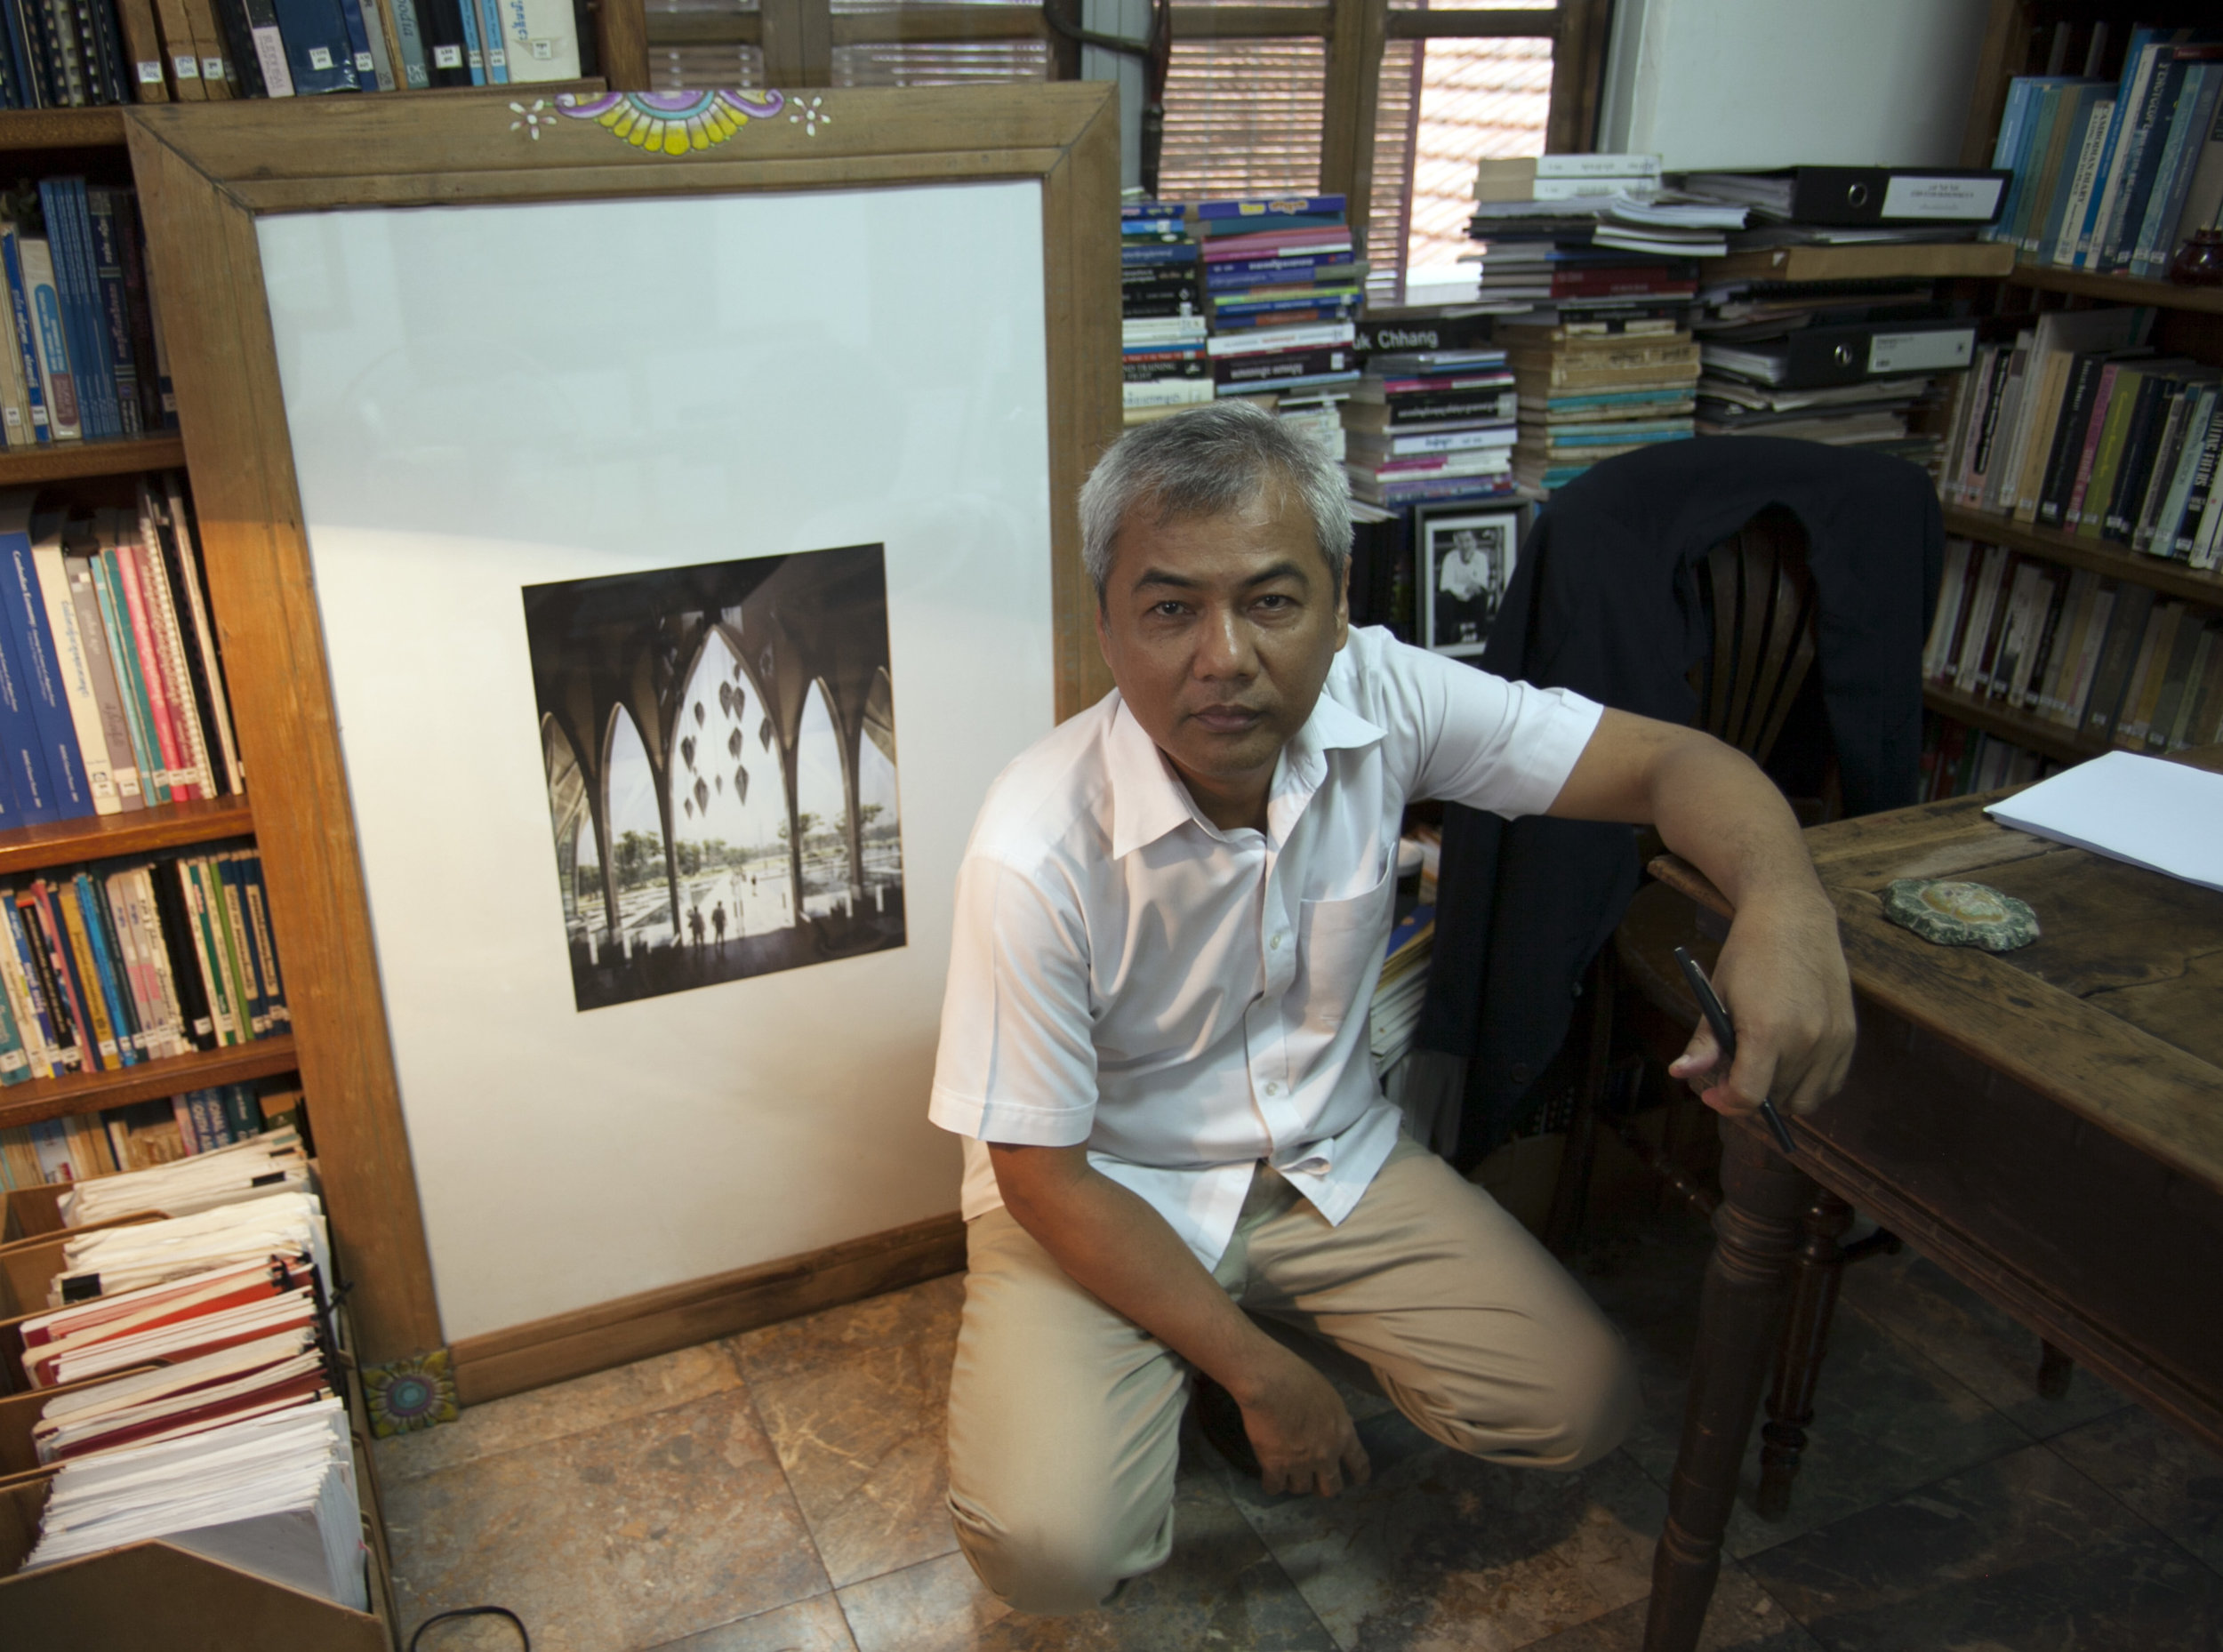 Youk Chhang, Director of the Document Centre Cambodia, with architectural design by Zaha Hadid for the Sleuk Rith Institute. Image courtesy of Brook Andrew.